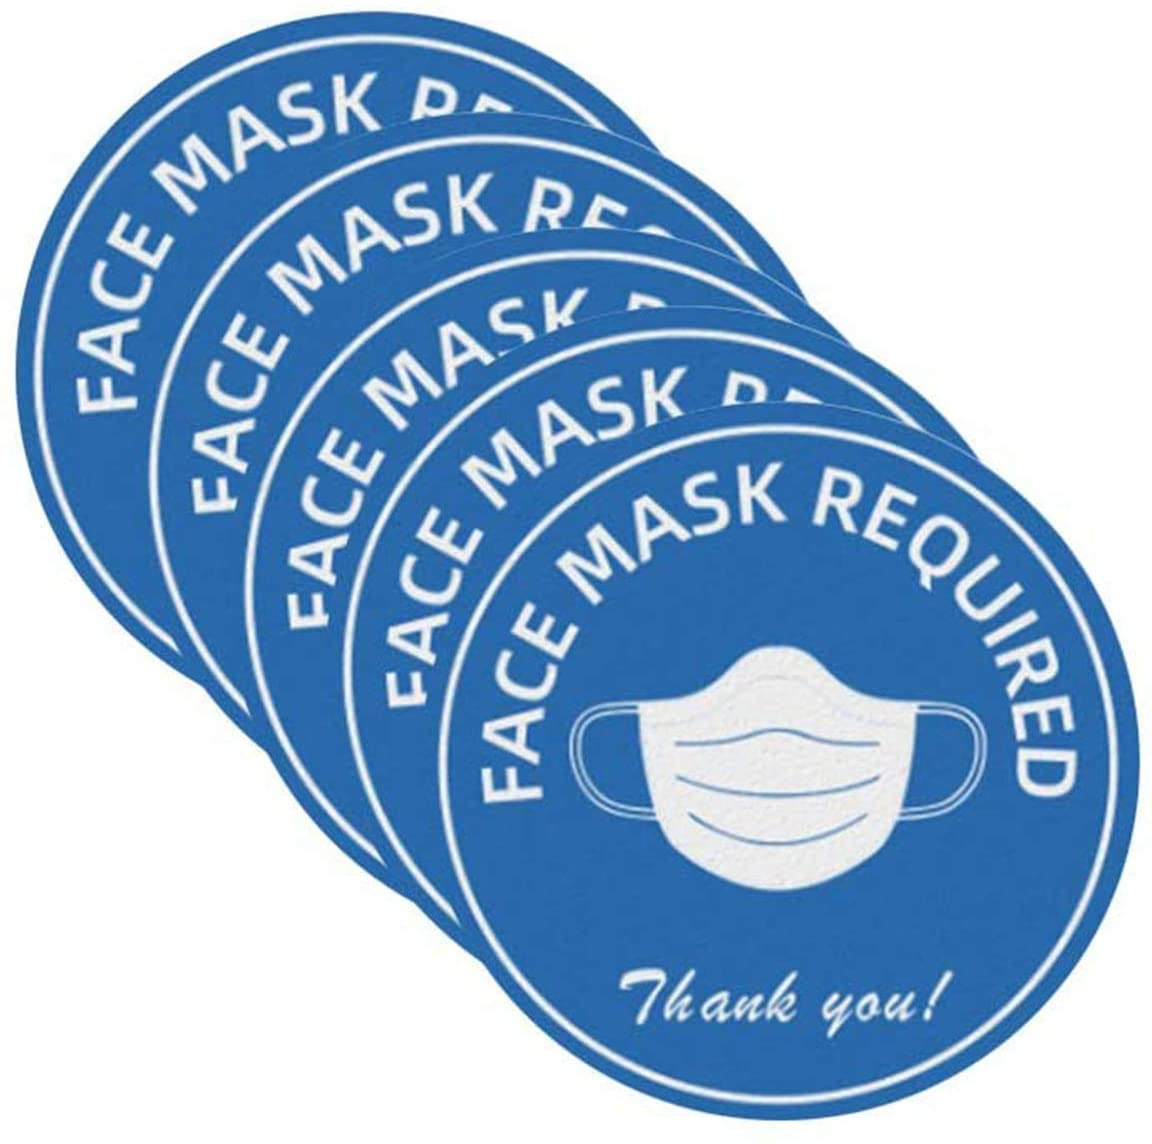 5 PCS Face Mask Required Sign,Please WEAR A FACE MASK Sign for Grocery Stores, Dr. Offices, Hospitals, Business, Adhesive Vinyl, Blue, Waterproof, Abrasion Resistant (Round)